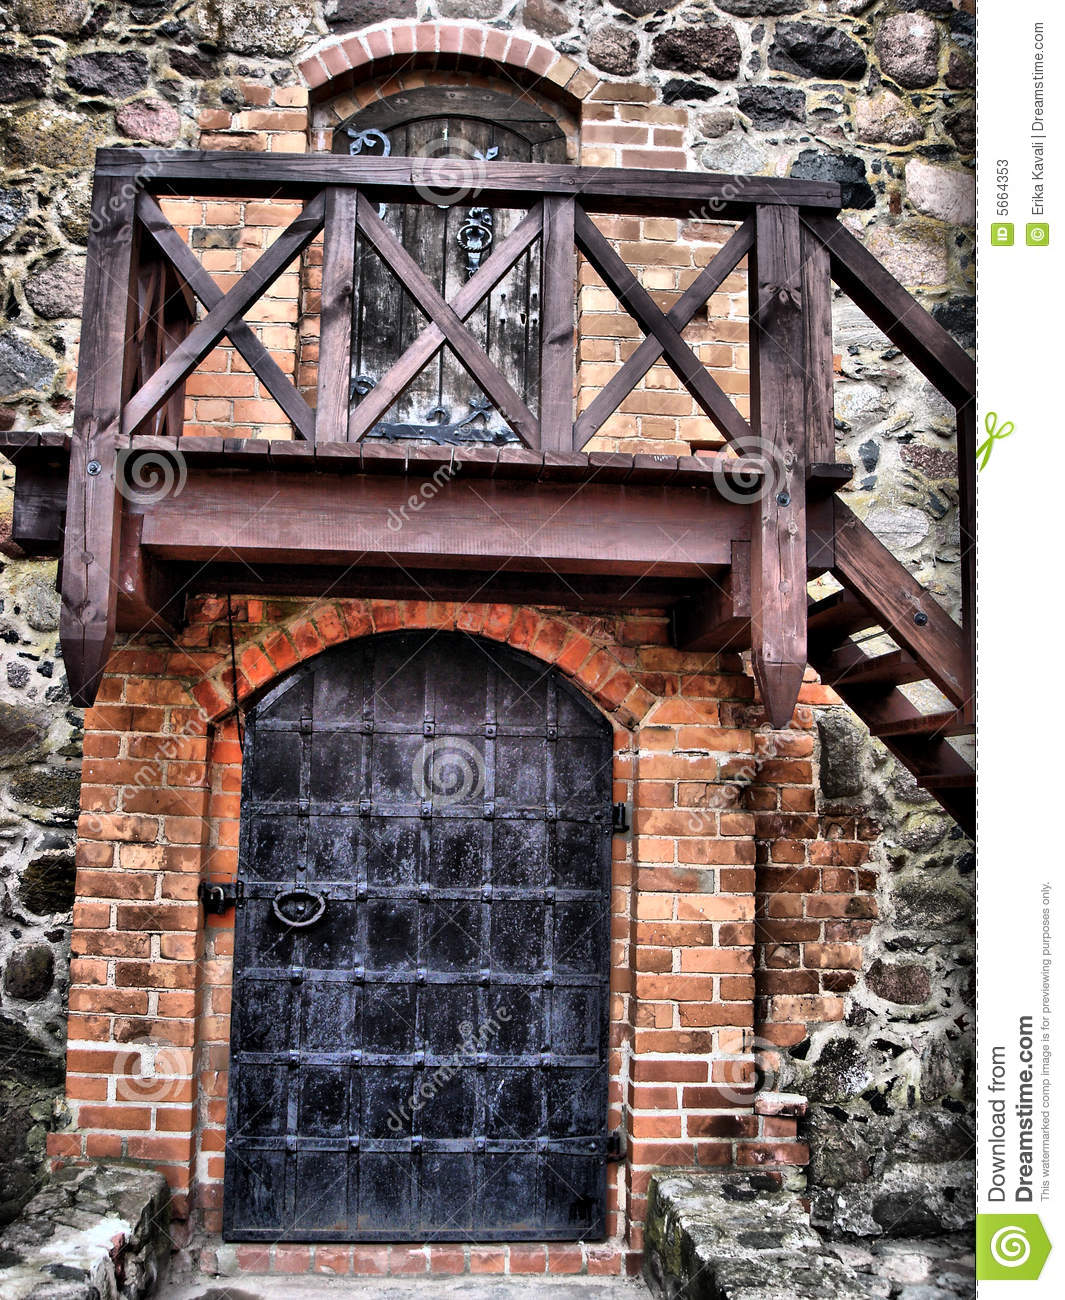 Oldcastle glass doors oldcastle glass shower doors inviting oldcastle glass doors old castle doors guimaraes old castle old castle doors stock photos eventelaan images eventelaan Image collections